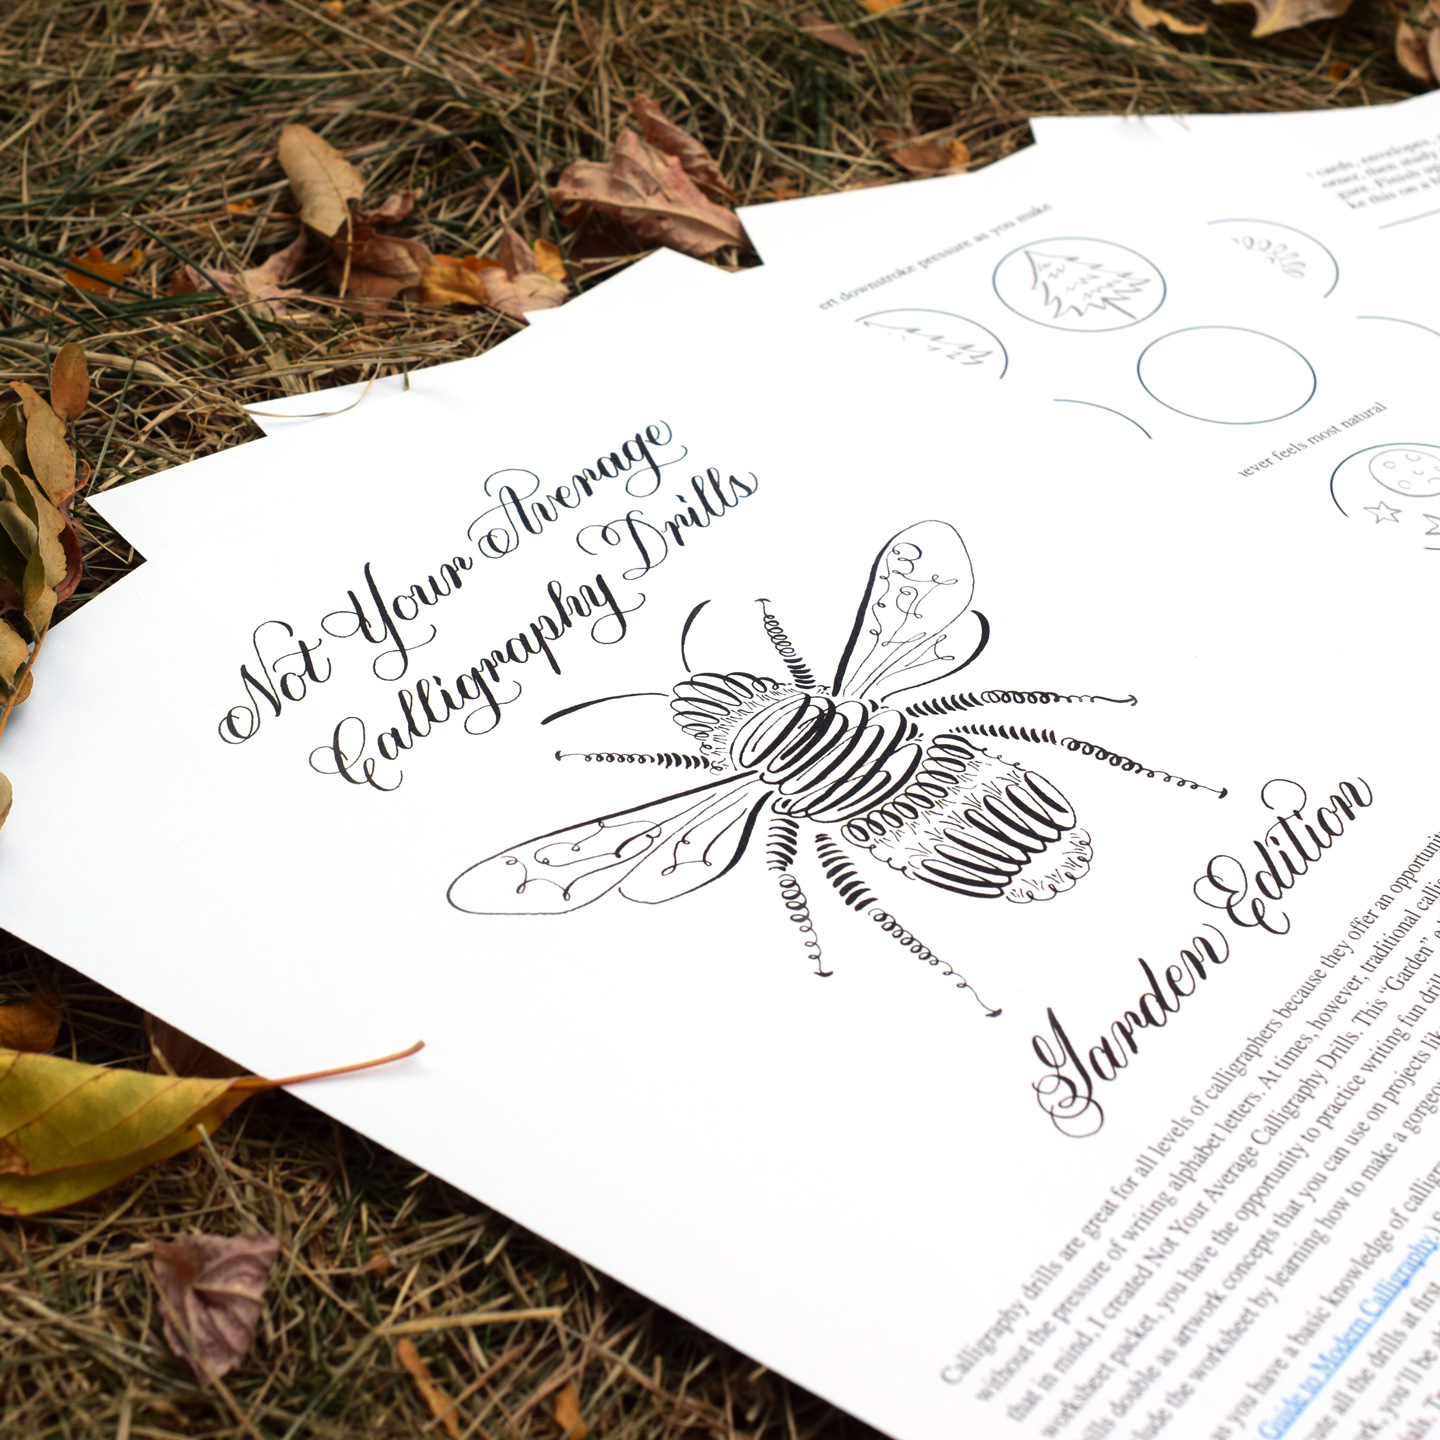 Not Your Average Calligraphy Drills Garden Edition